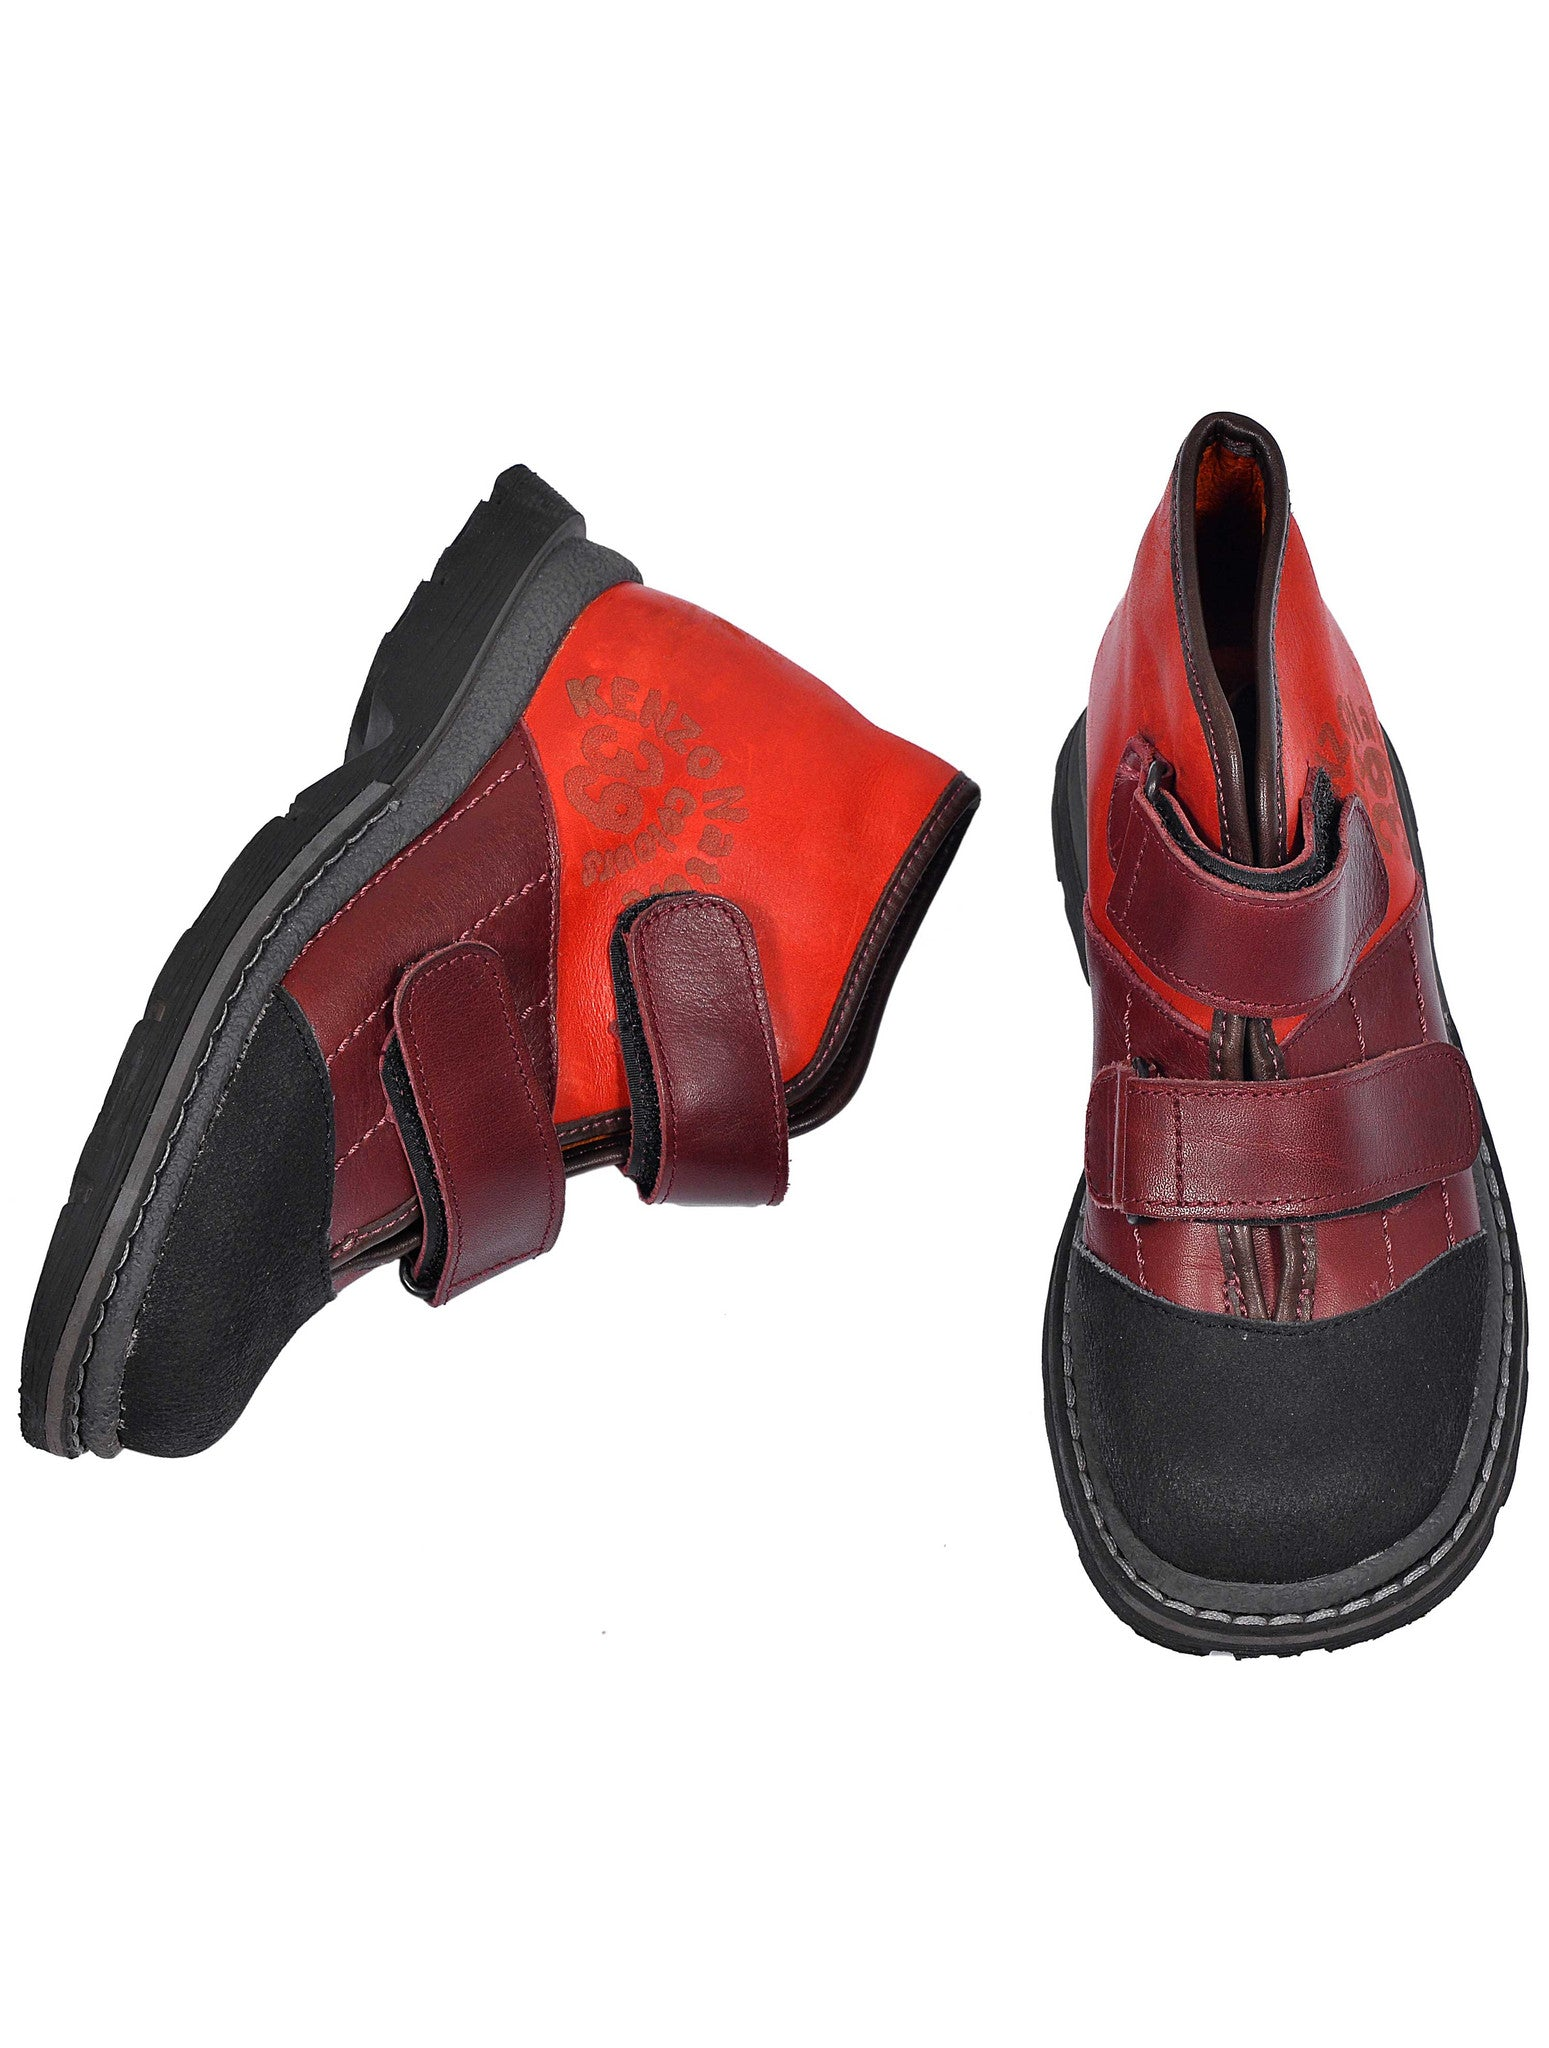 HIGH TOP LEATHER SHOES